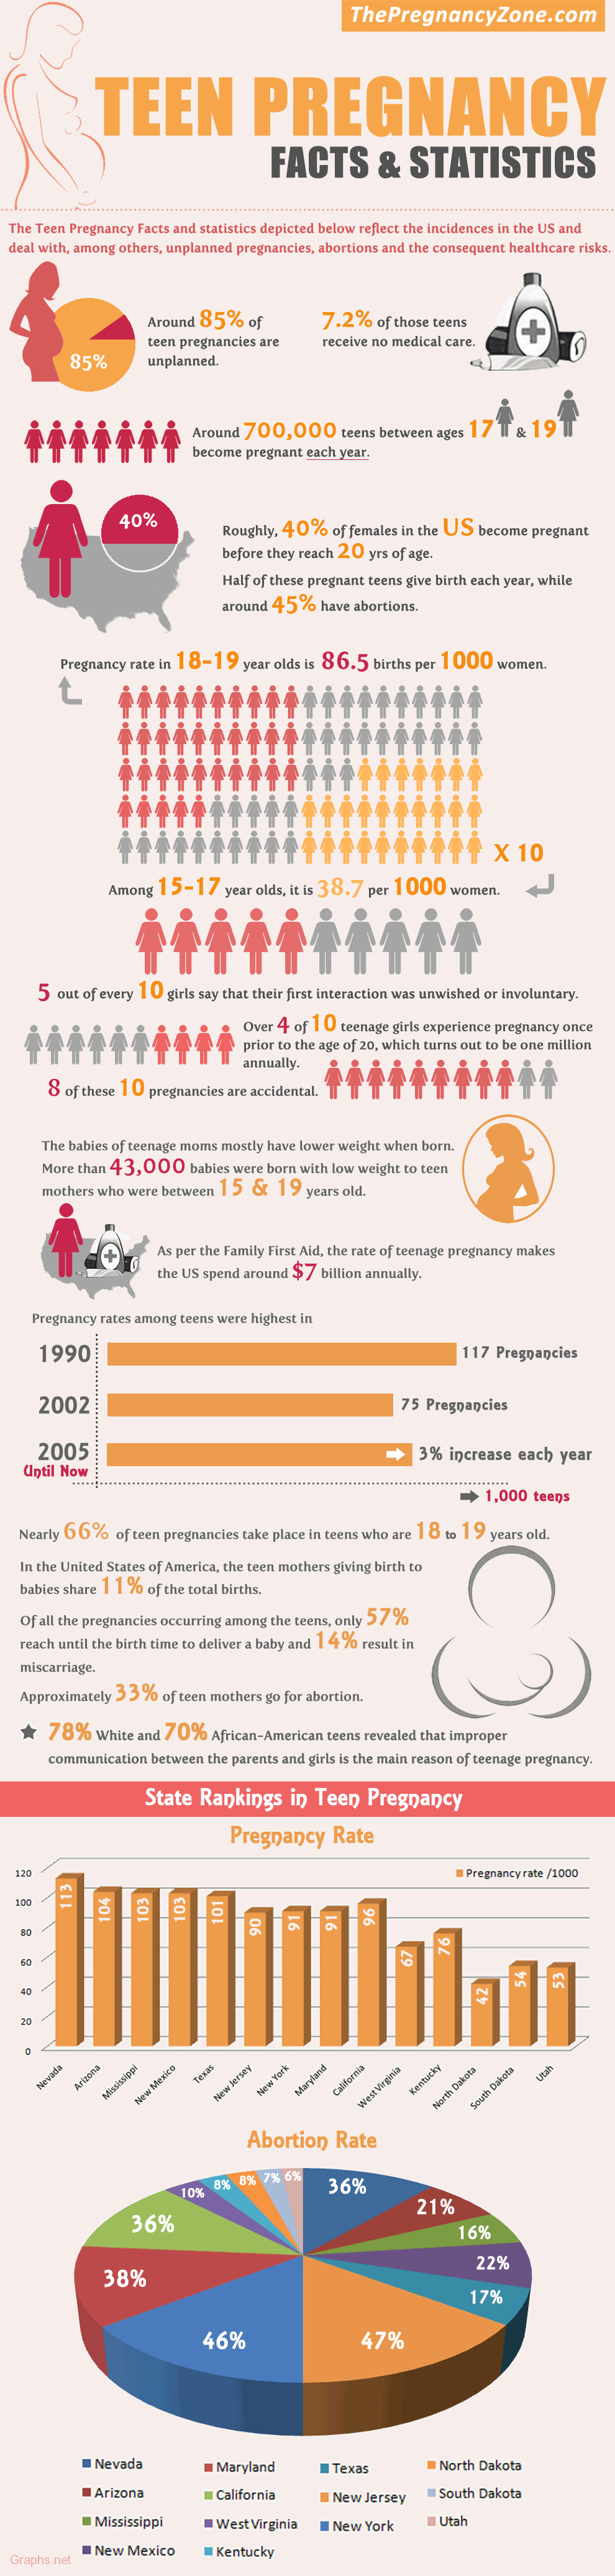 Facts and Statistics of Teen Pregnancy